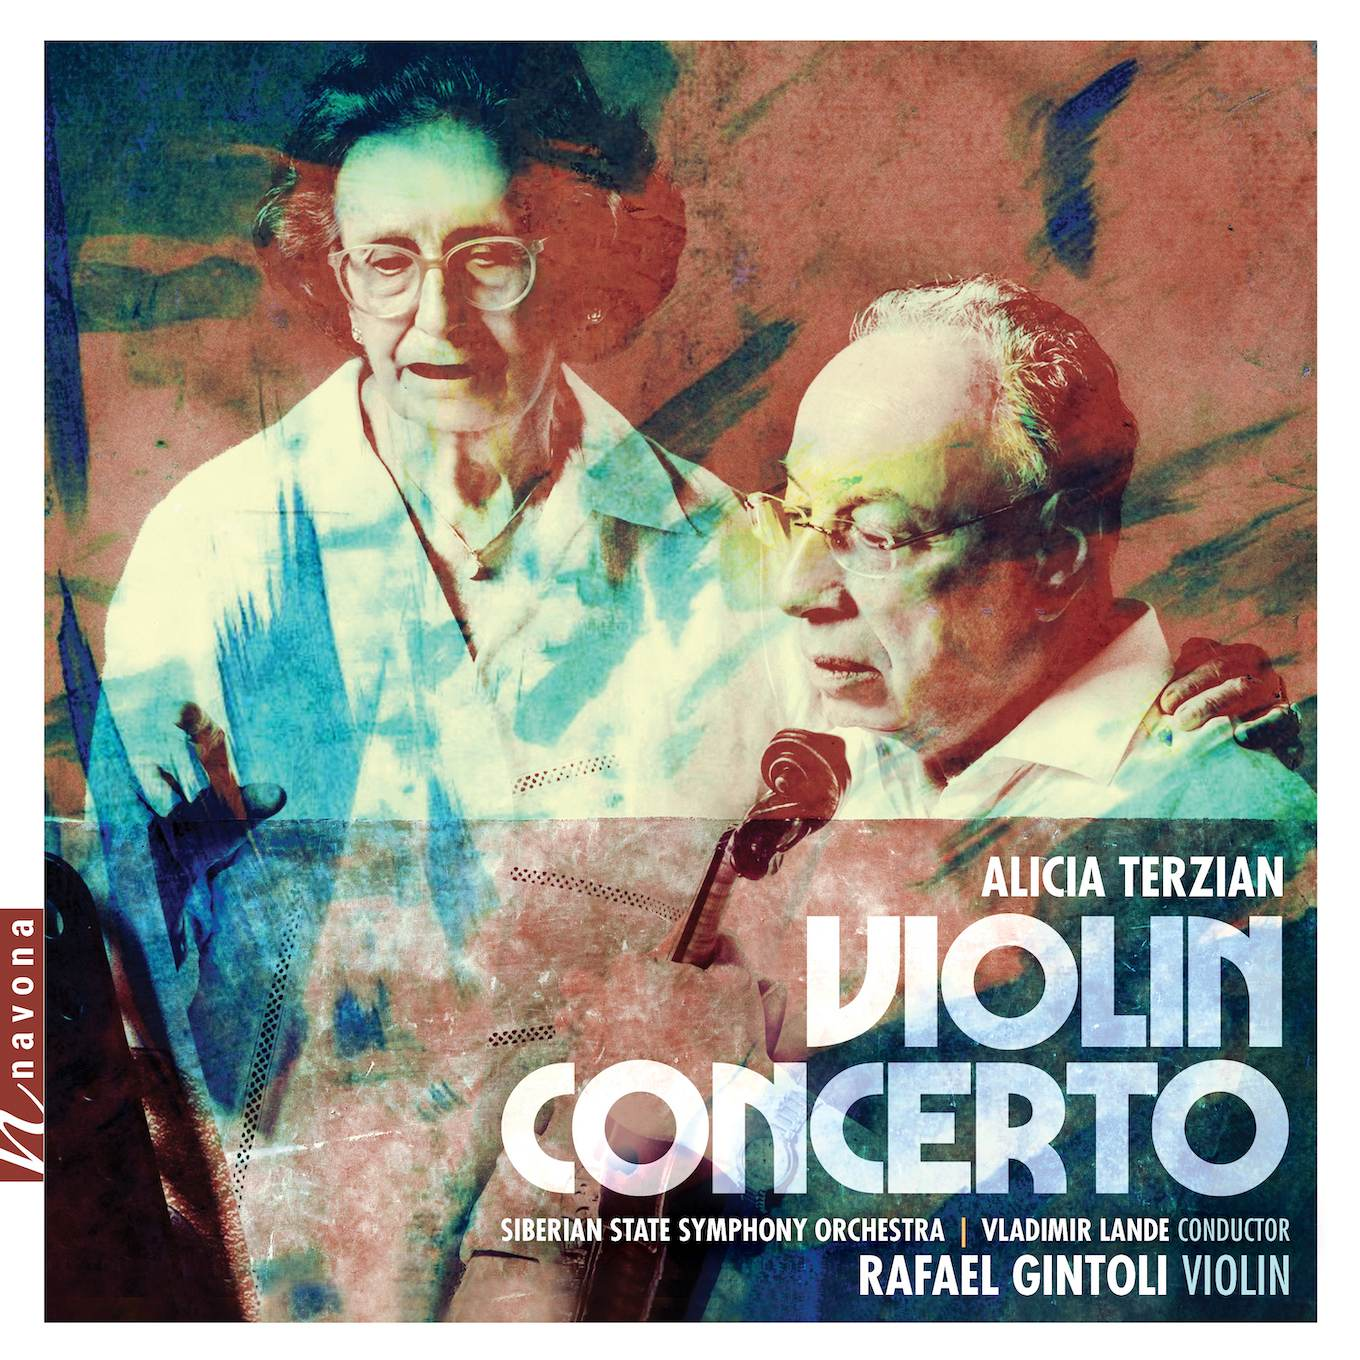 Violin Concerto - Alicia Terzian - Album Cover